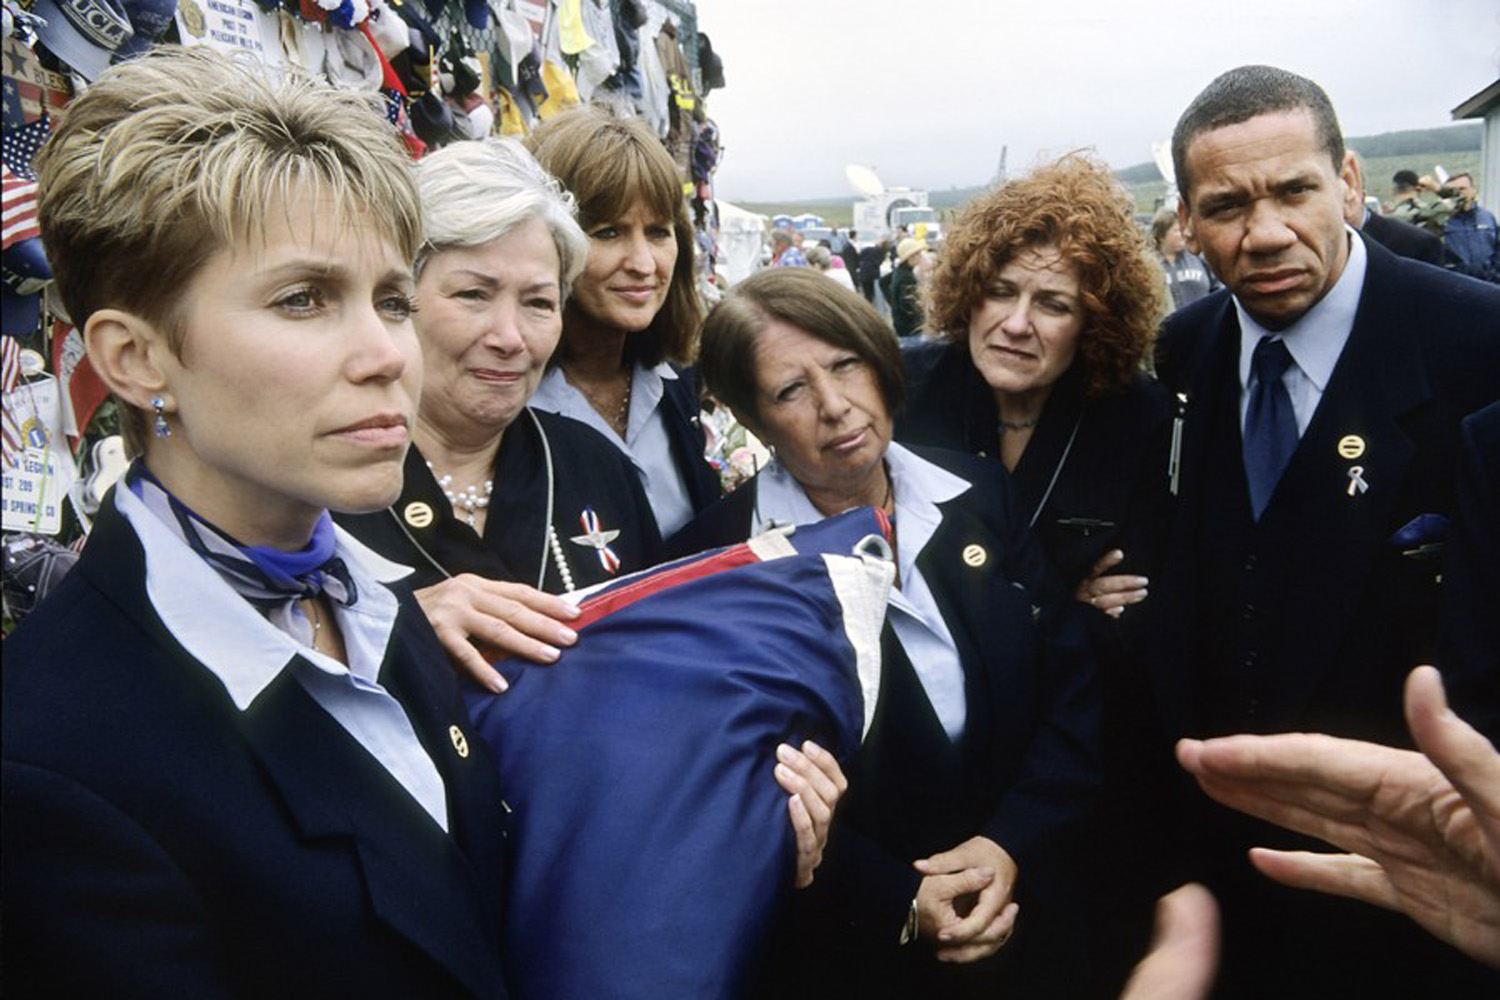 United Airlines flight attendants who sometimes flew on the flight 93 route, accept a flag in honor of the flight attendants lost on 9/11.                               They are standing next to the temporary memorial near the crash site.